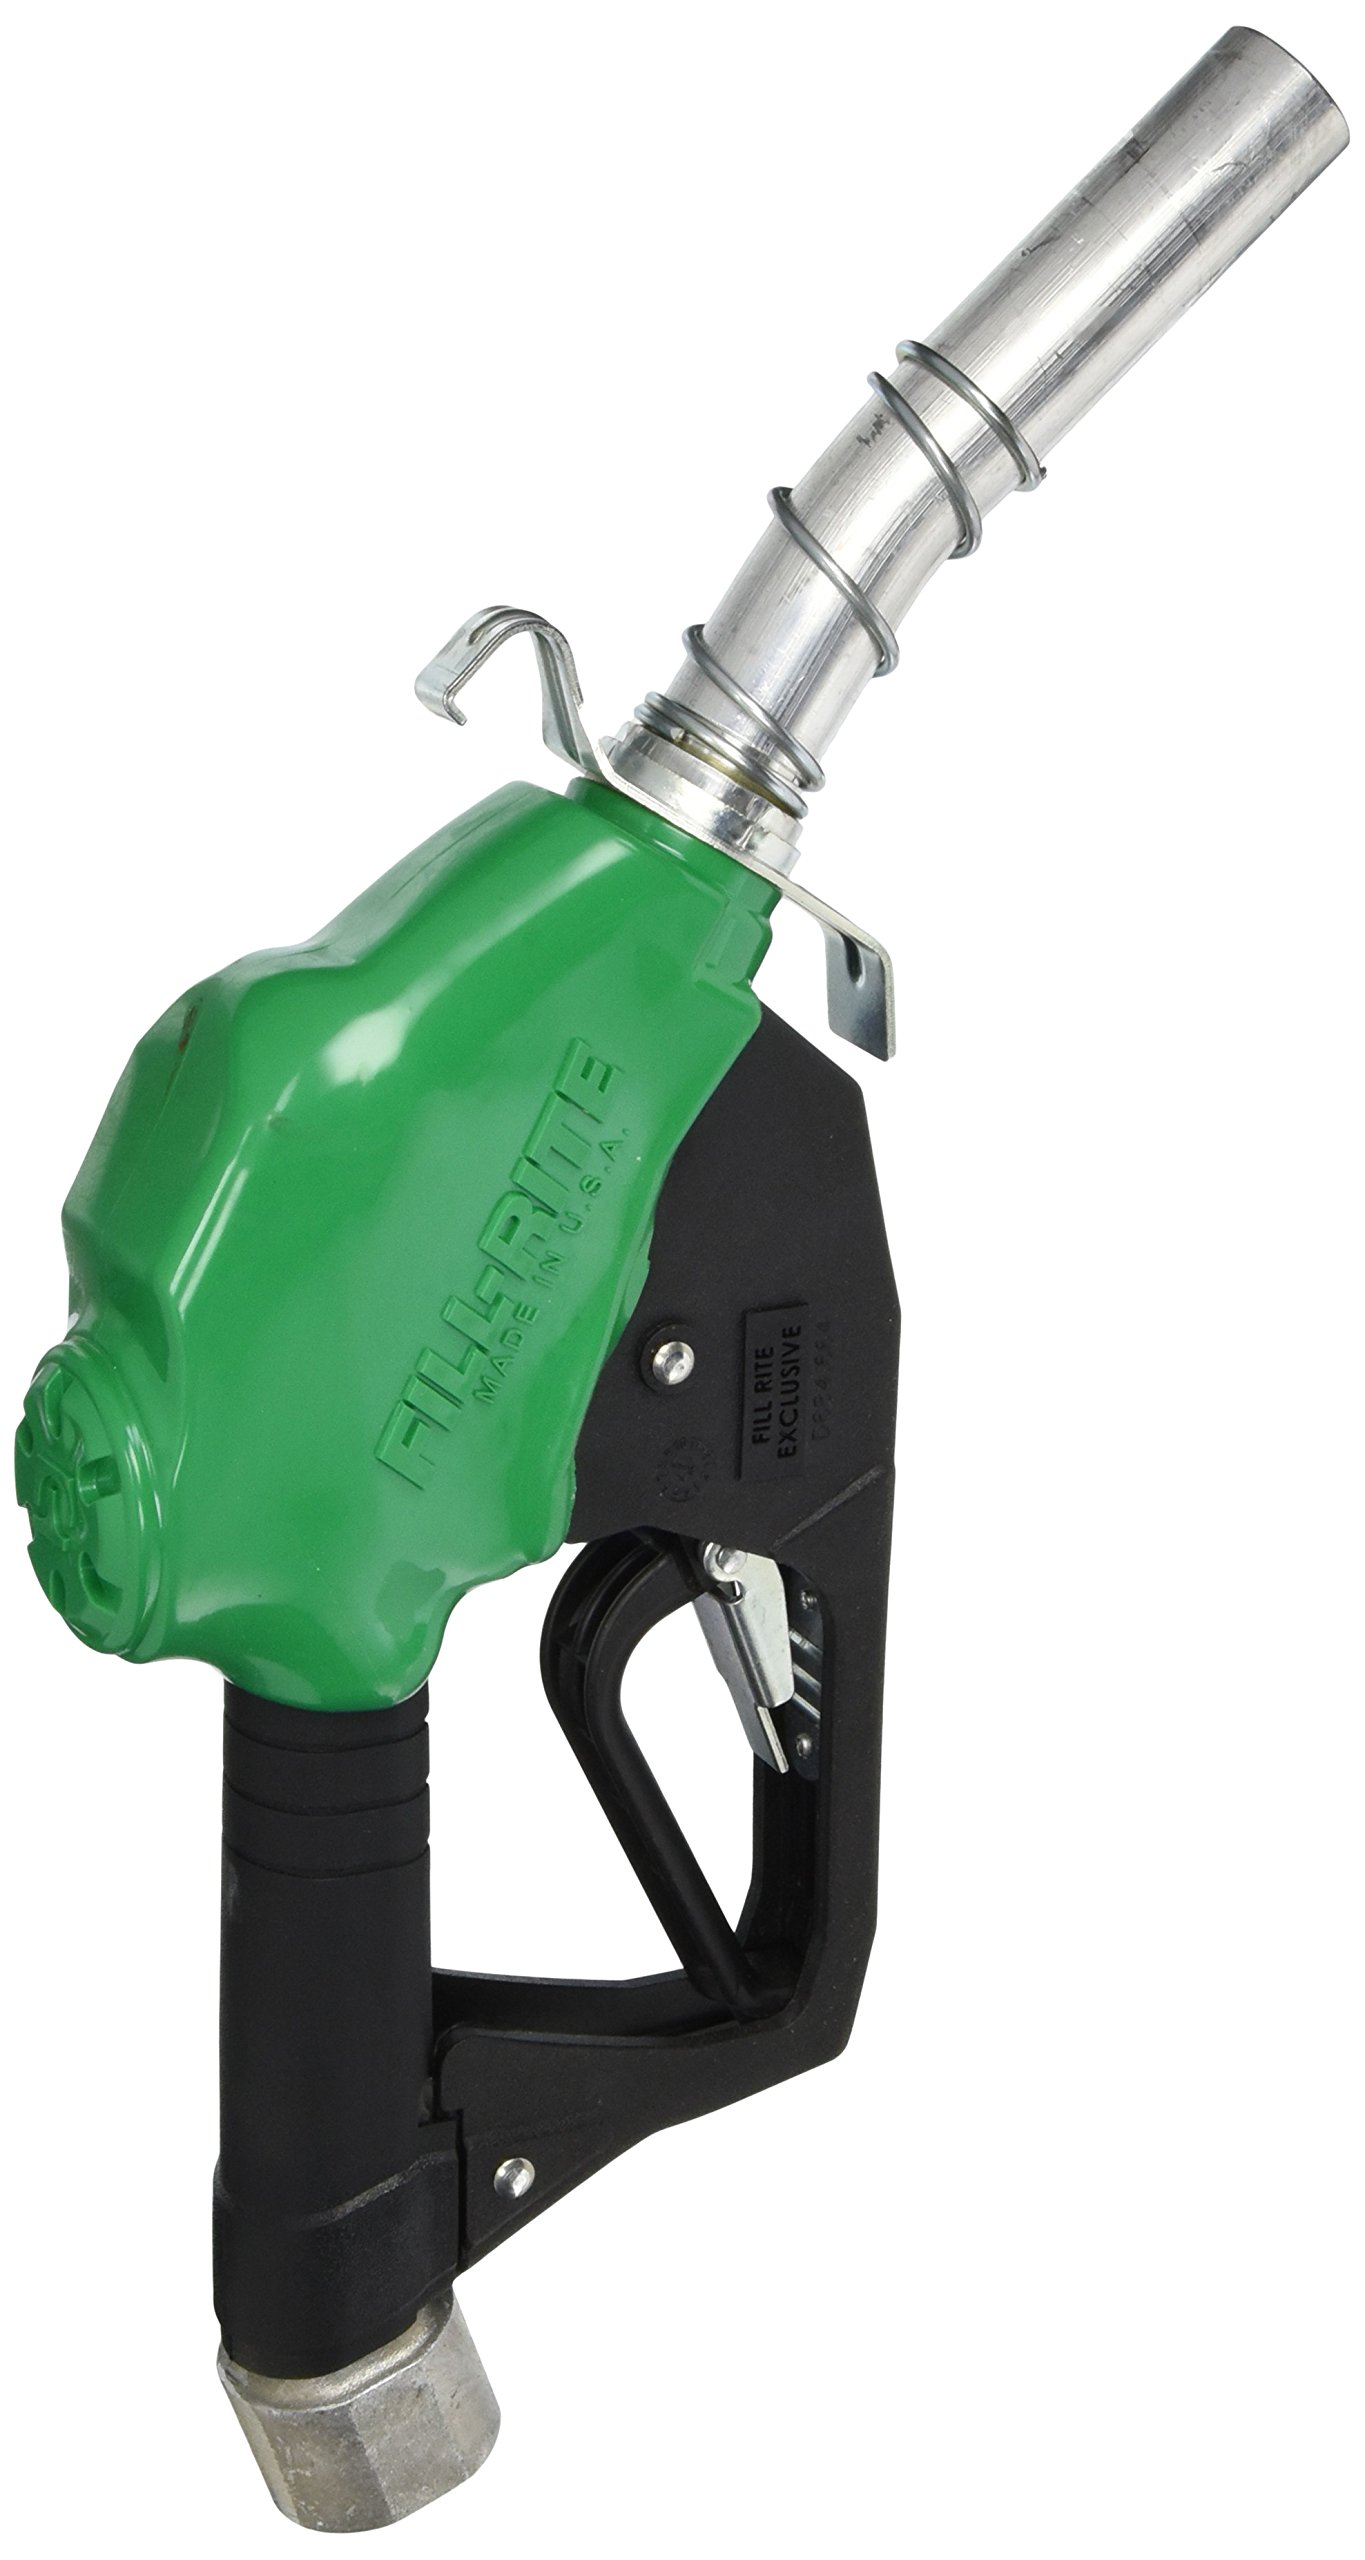 Auto Fuel Nozzle by Tuthill